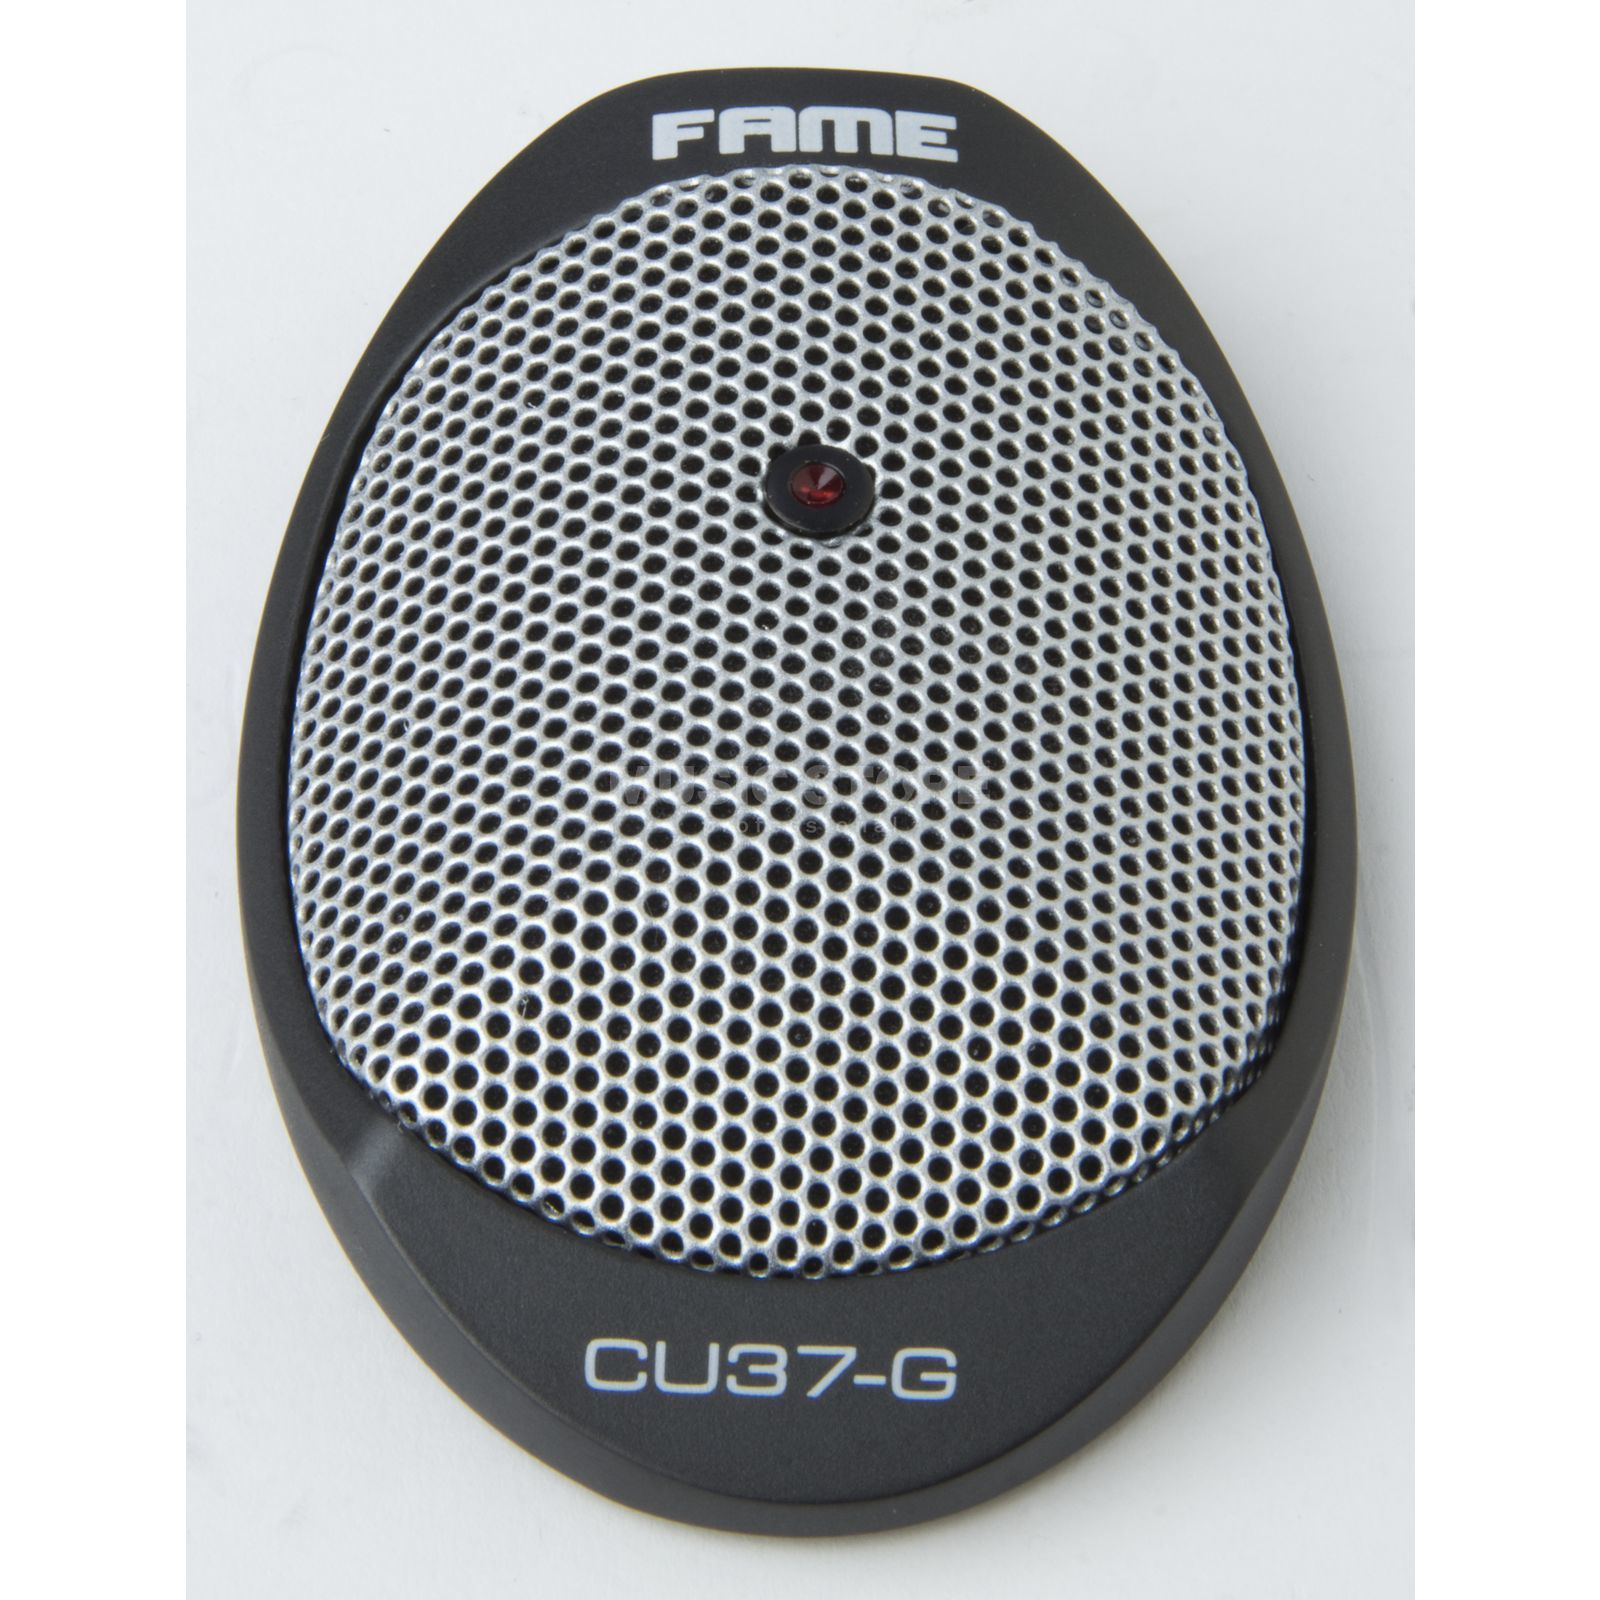 Fame CU37-G USB Boundary Mic incl. Samplitude Silver 11 Product Image